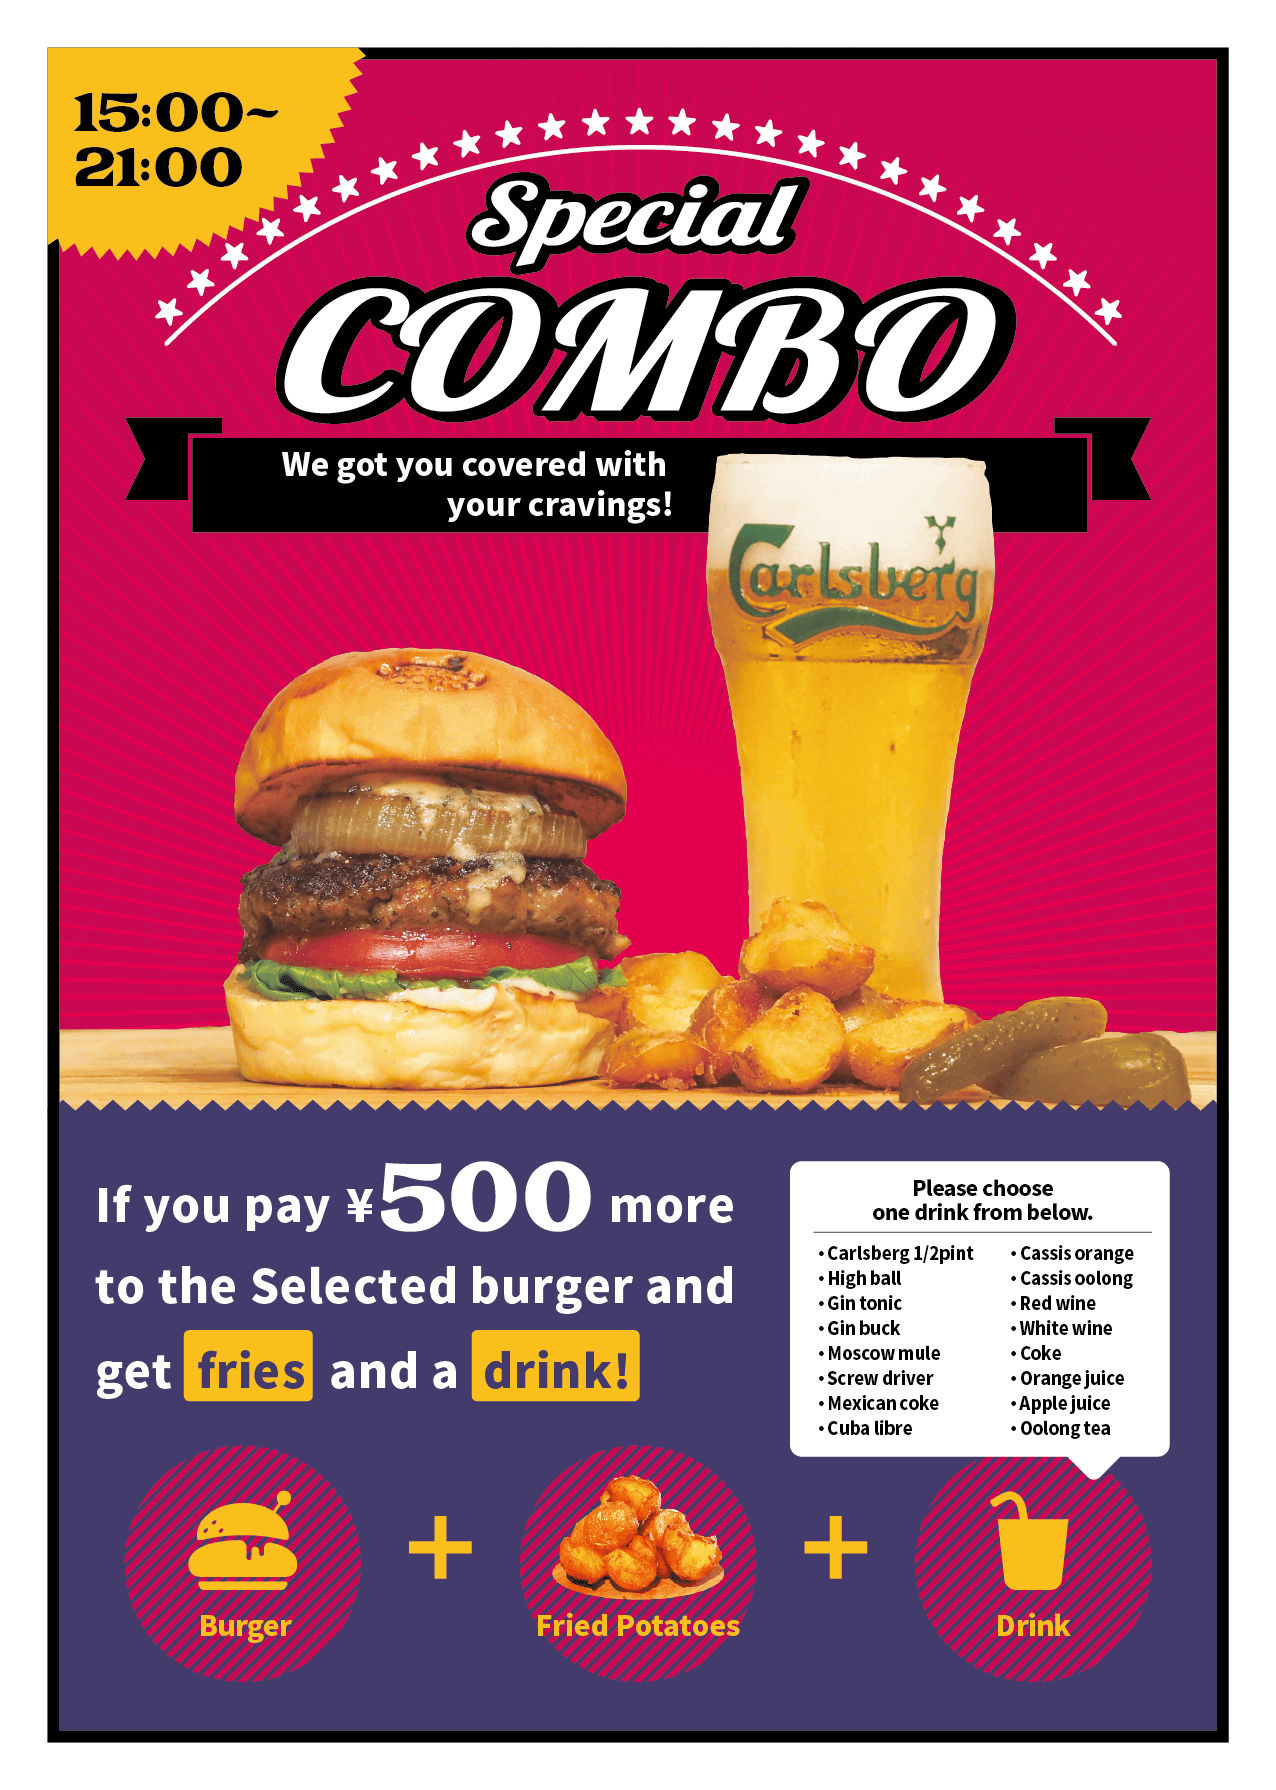 see special combo menu